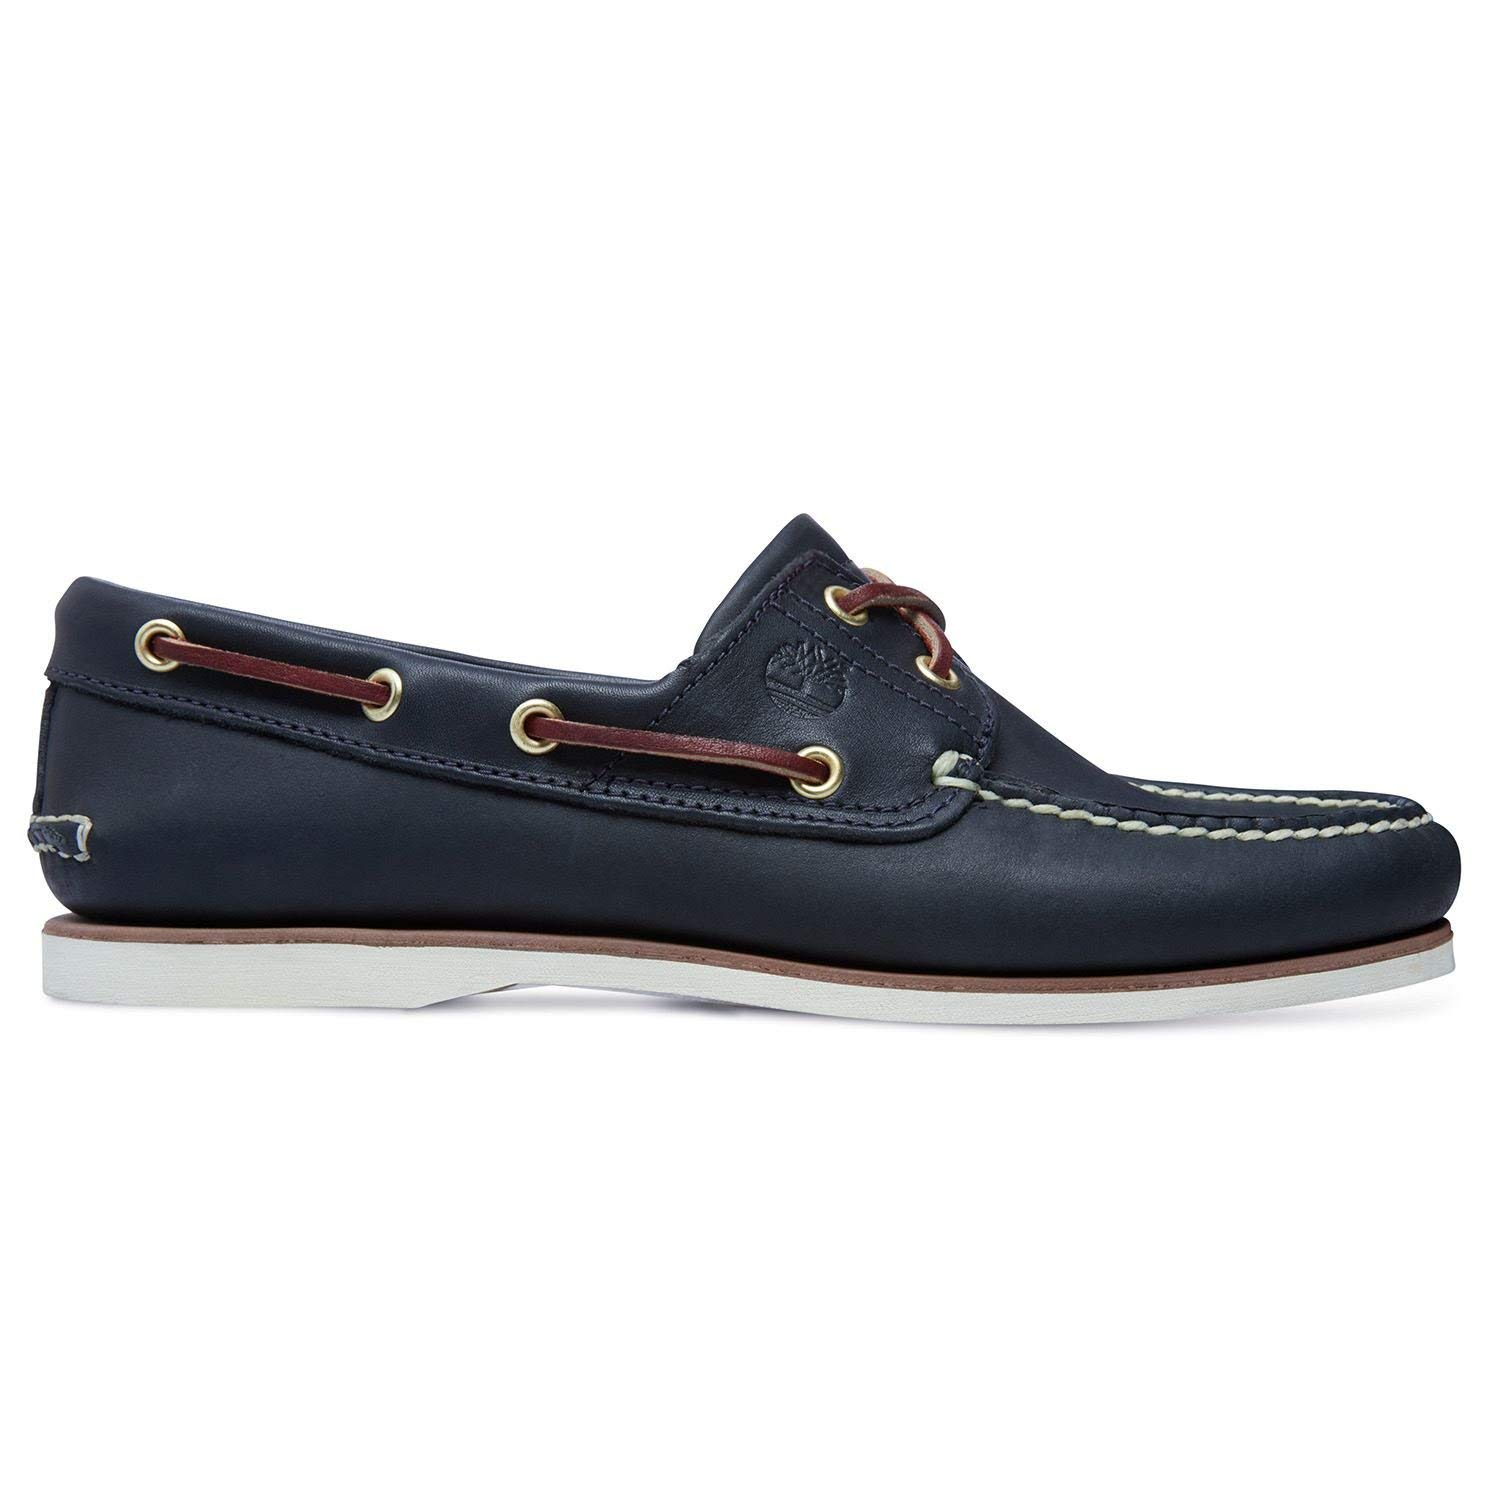 dad26a7c78244 Best Rated in Men's Boat Shoes & Helpful Customer Reviews - Amazon.co.uk